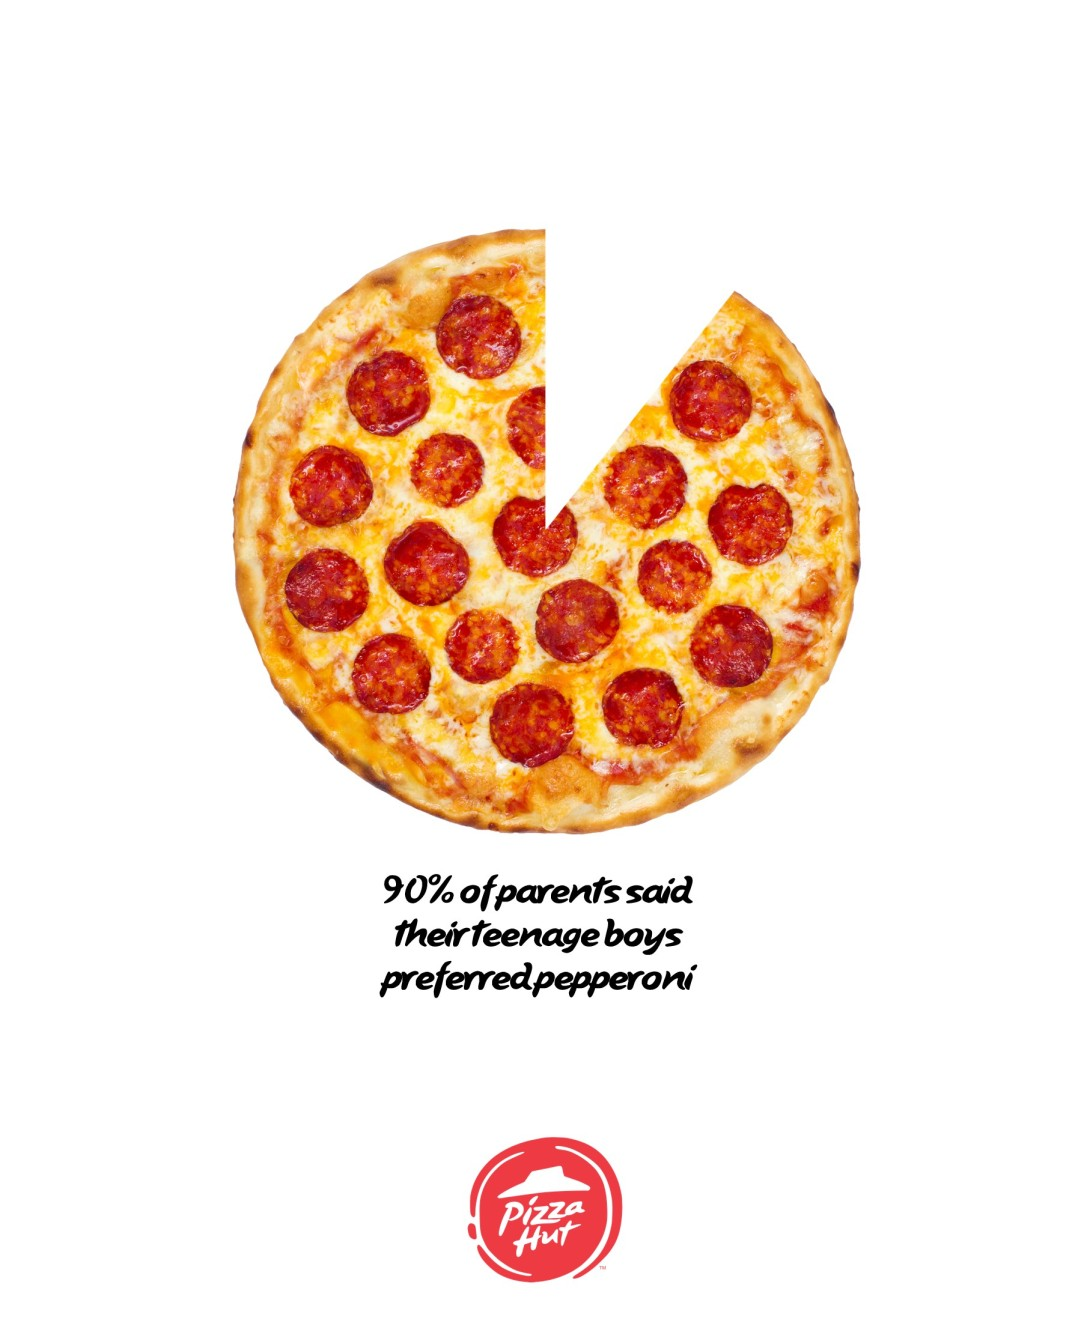 Advertise pizza - pie chart